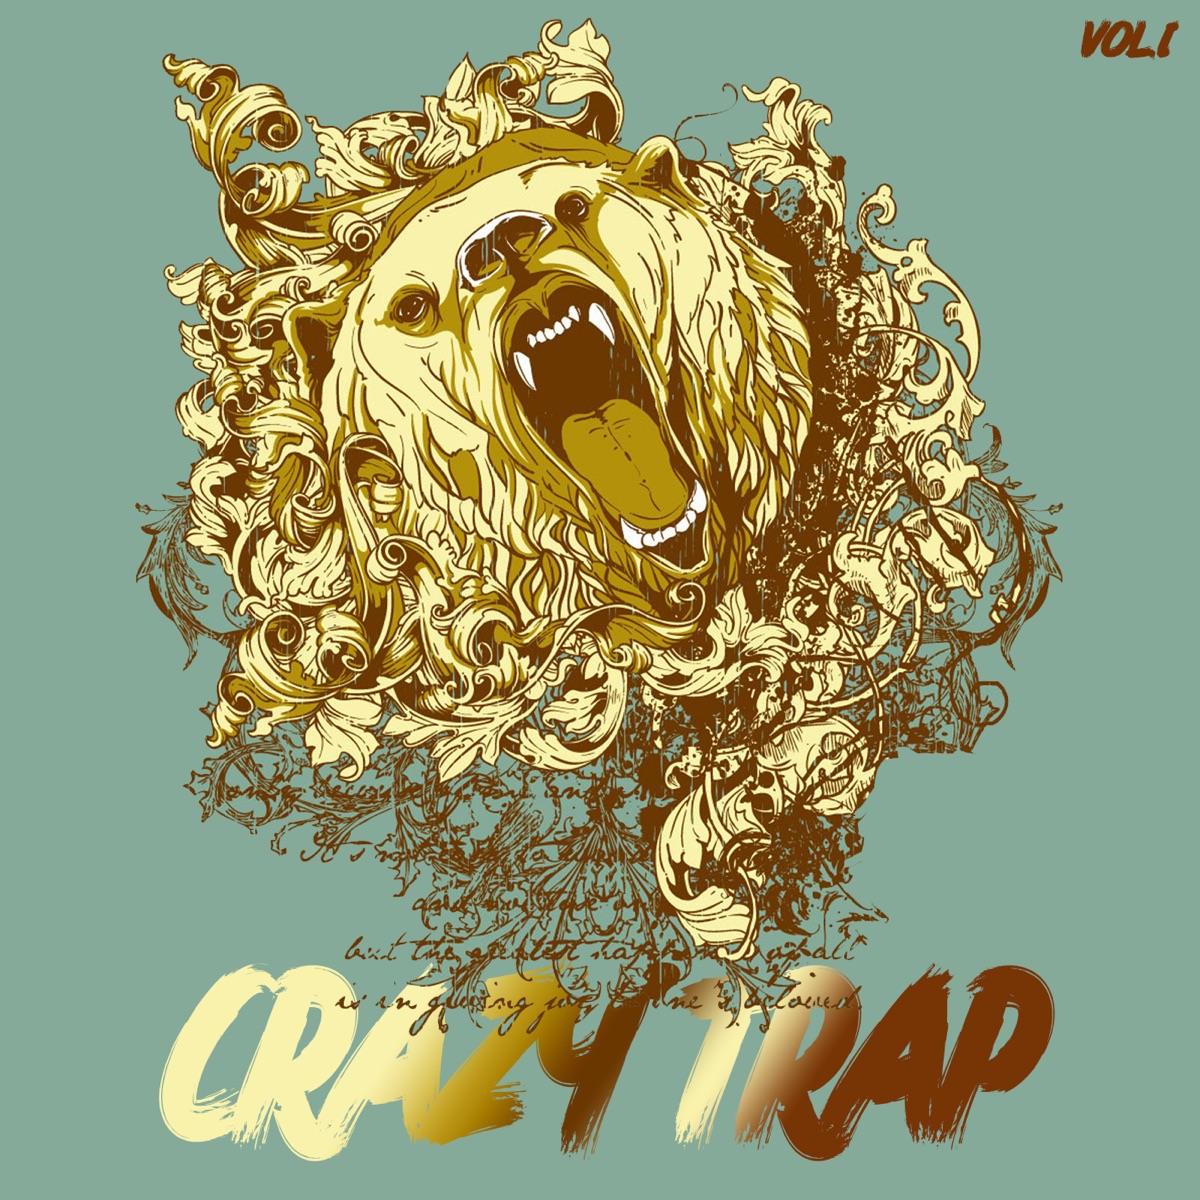 Crazy Trap Vol I Album Cover by Various Artists